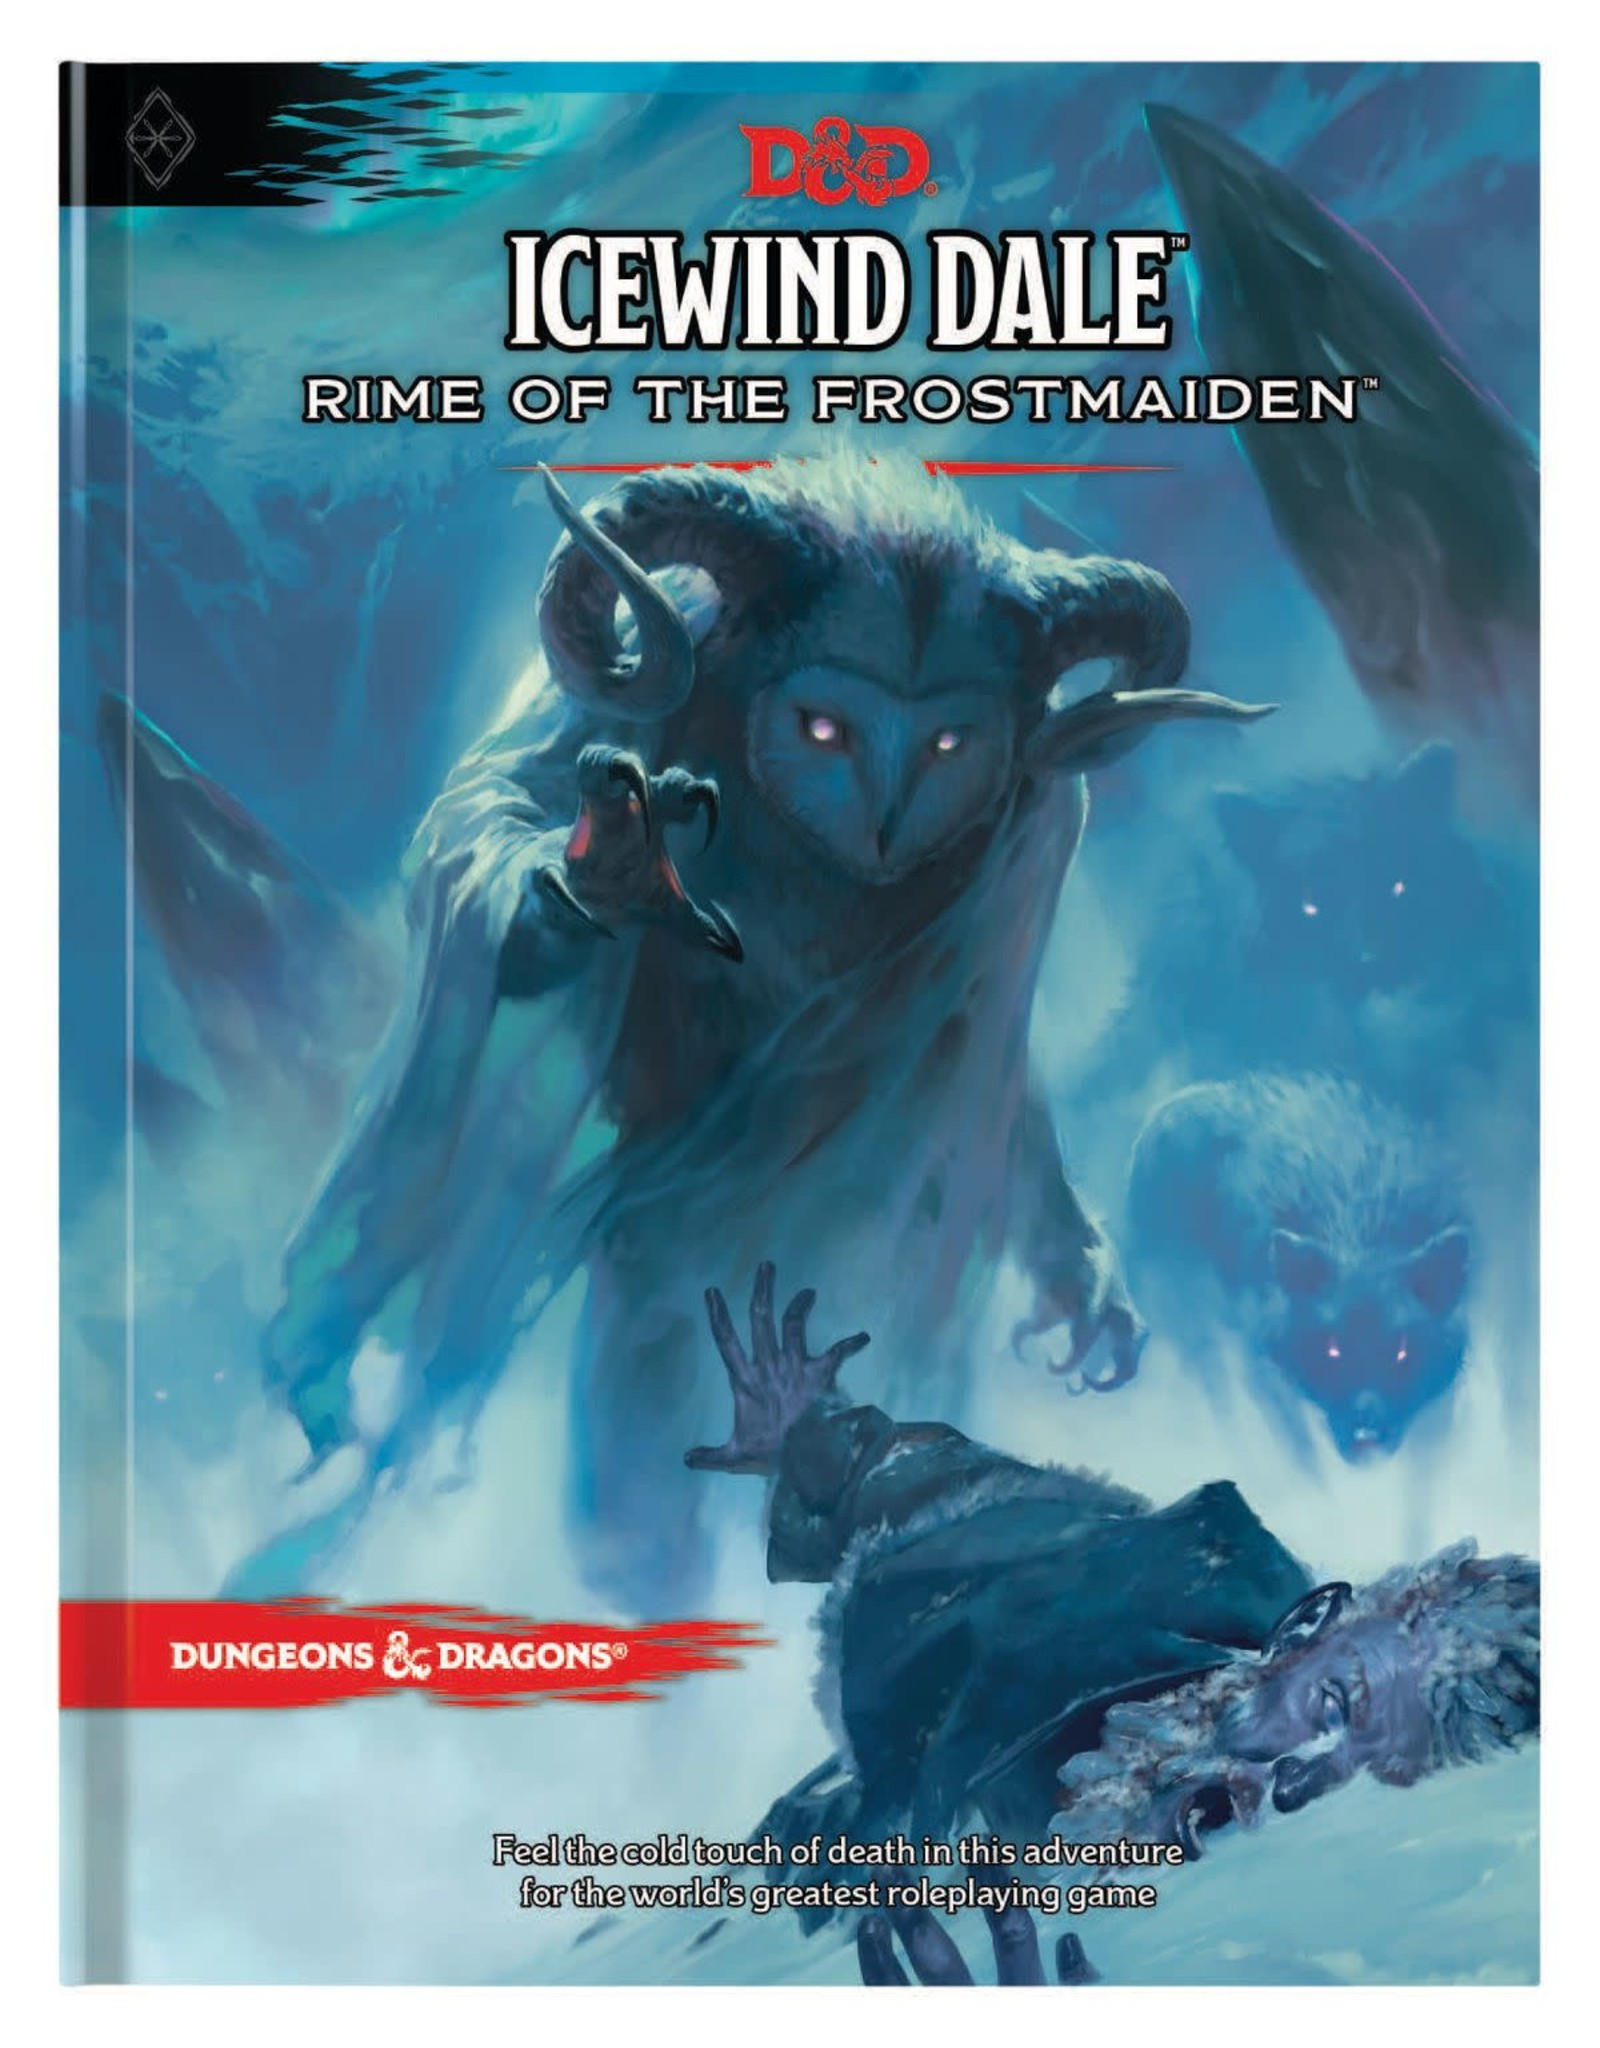 Wizards of the Coast Preorder Dungeons & Dragons Icewind Dale